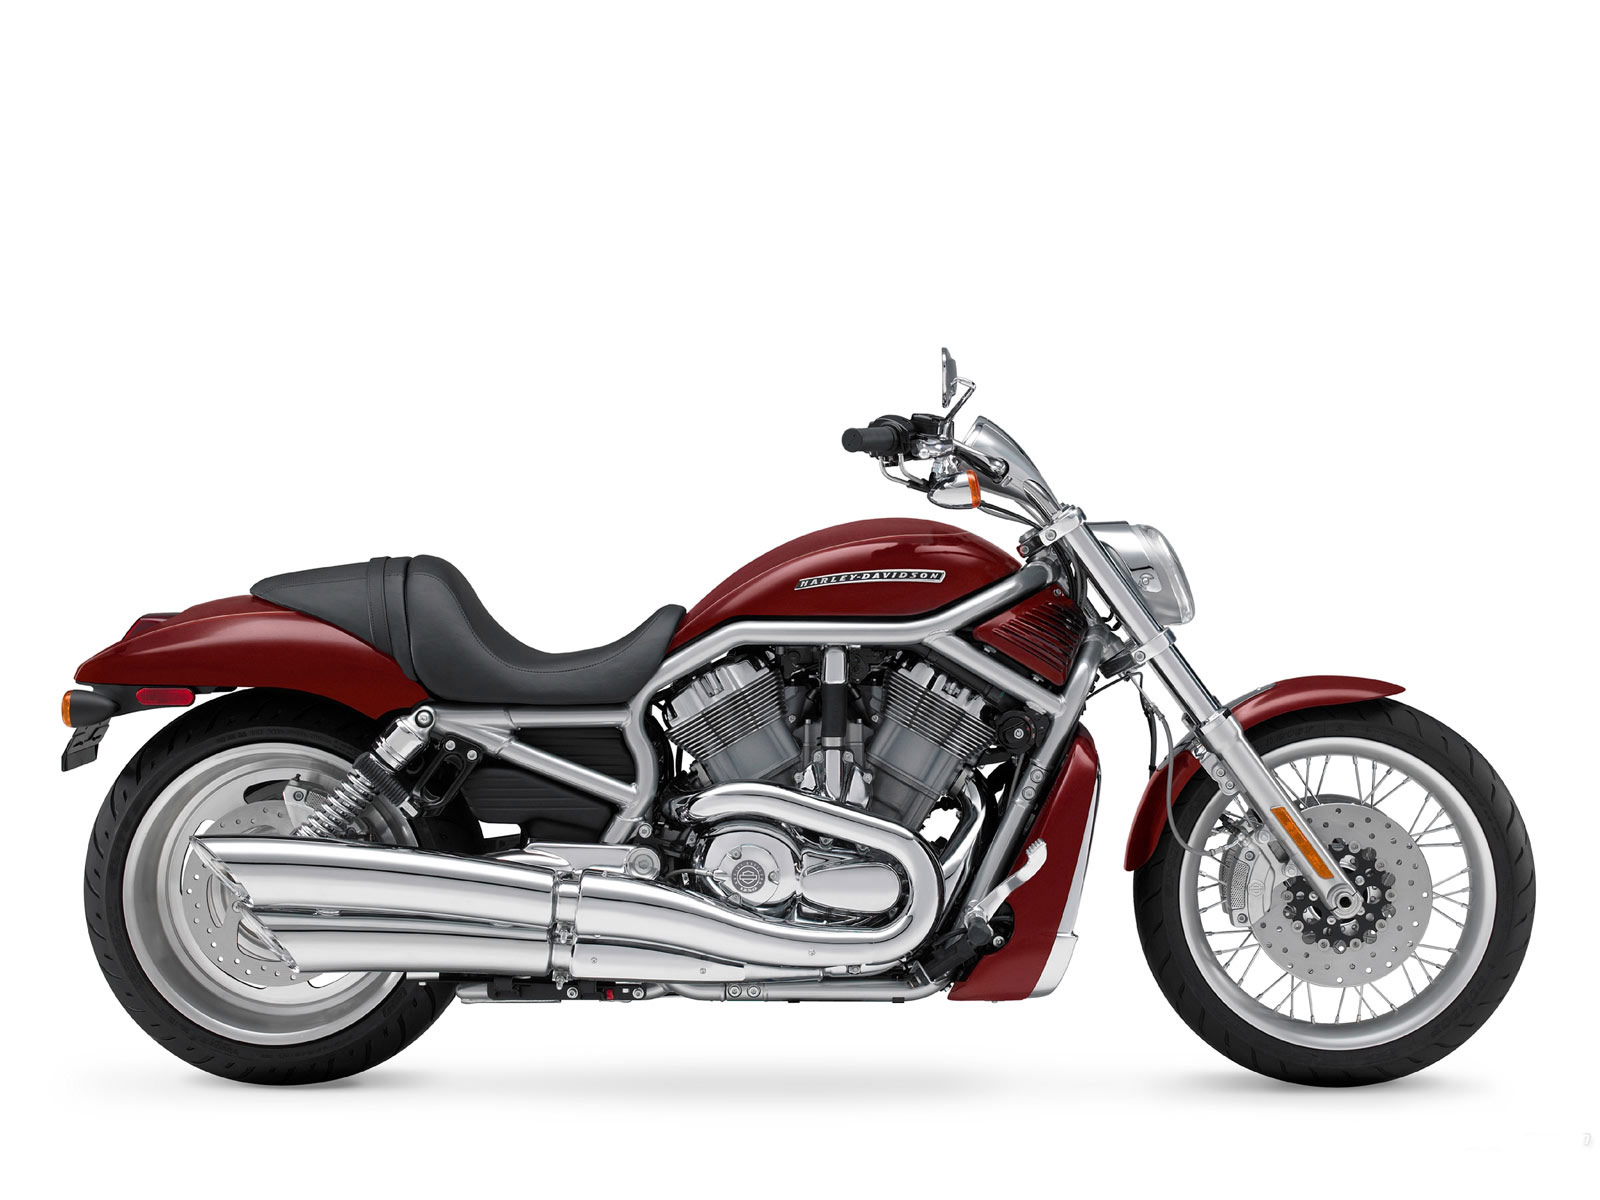 harley davidson pictures 2009 vrscaw v rod specifications. Black Bedroom Furniture Sets. Home Design Ideas